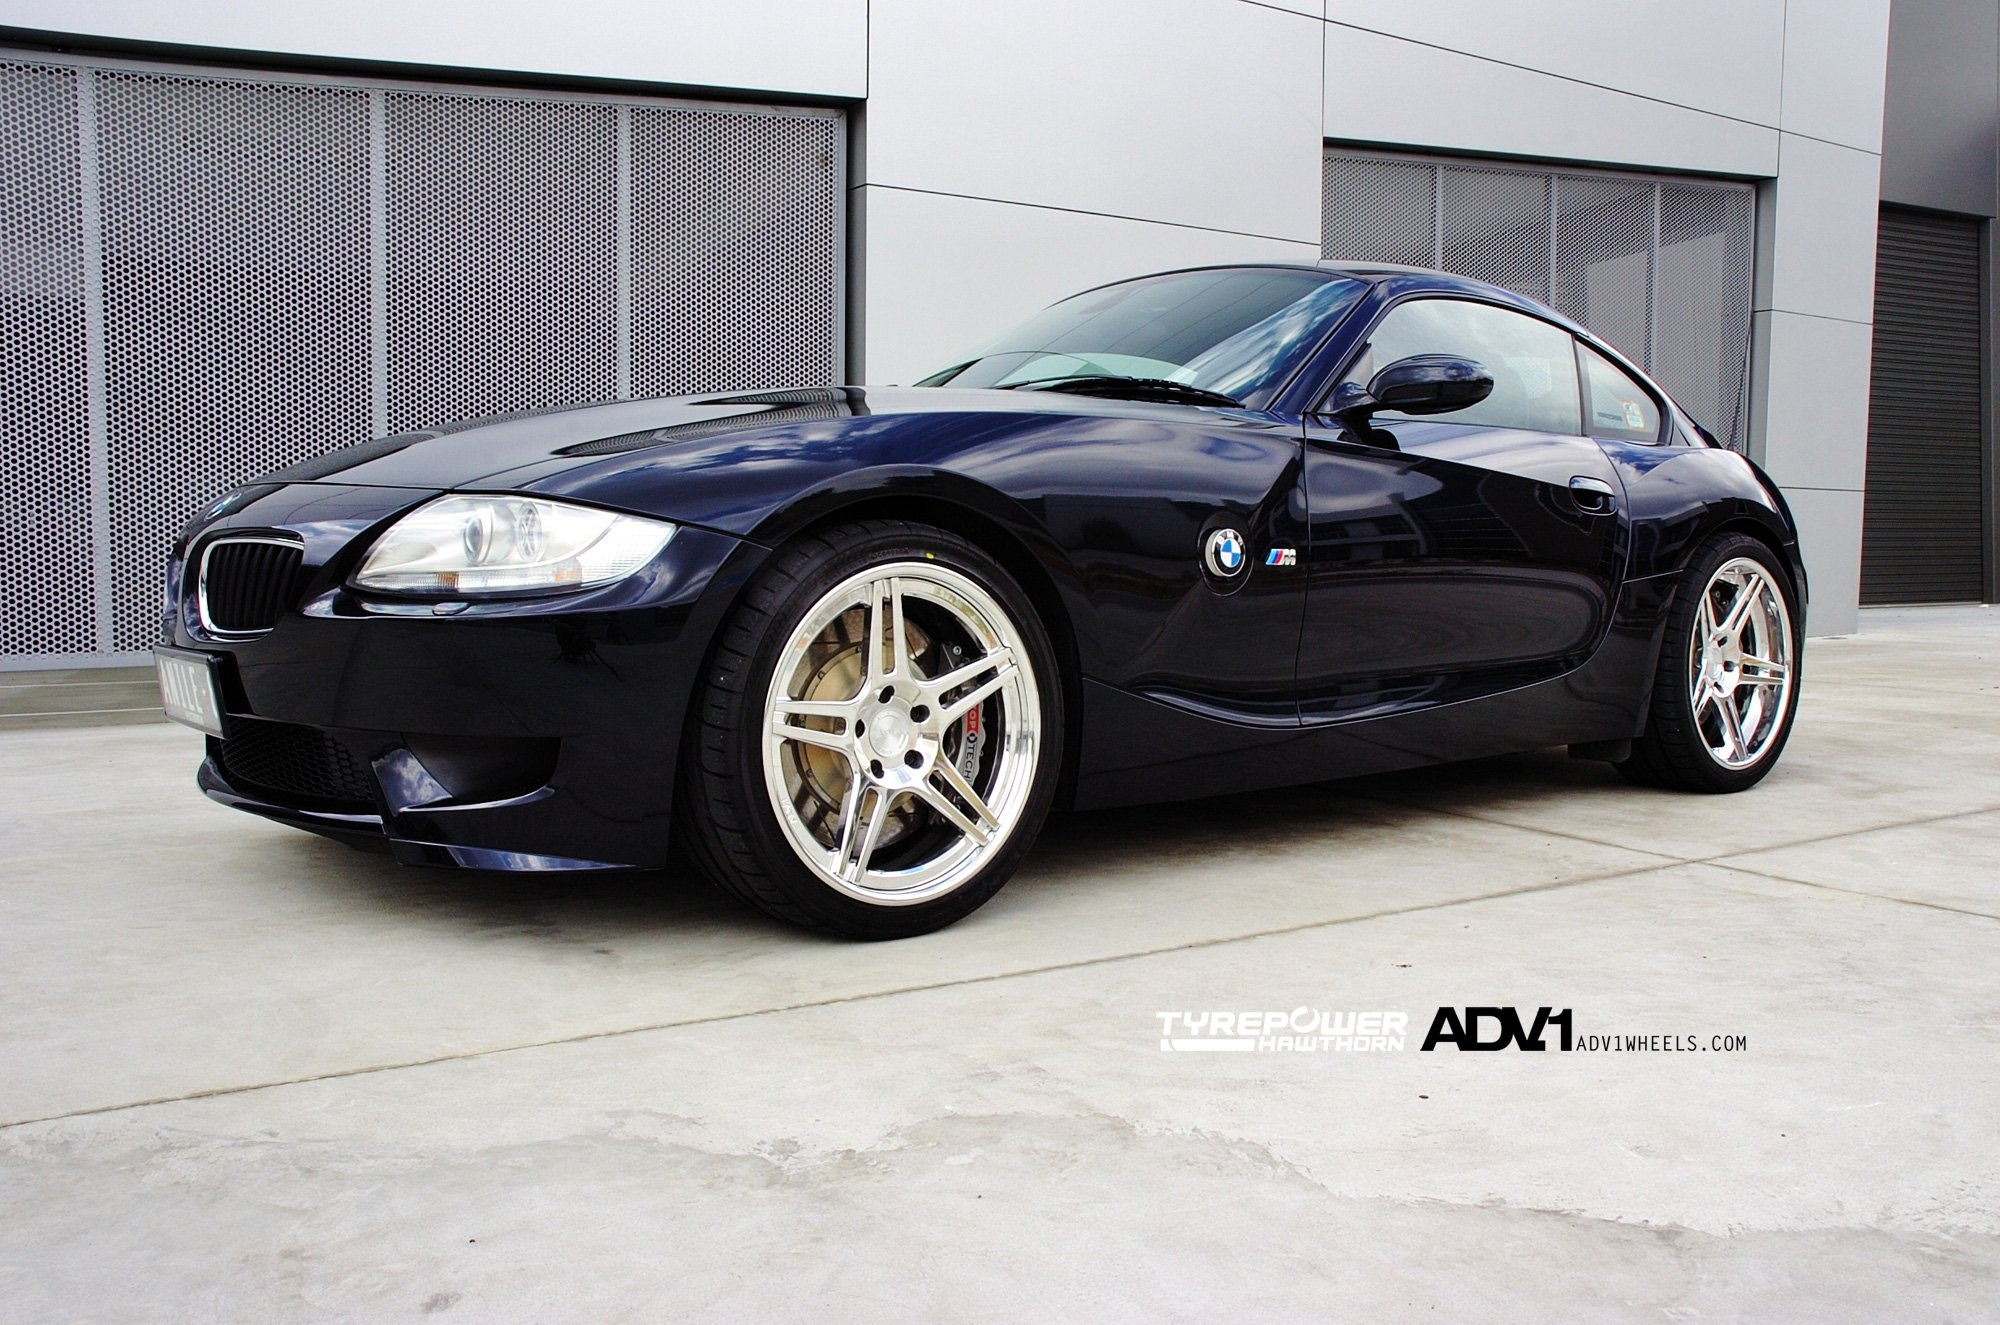 Clean Looks Of The Bmw Z4m Coupe With Polished Custom